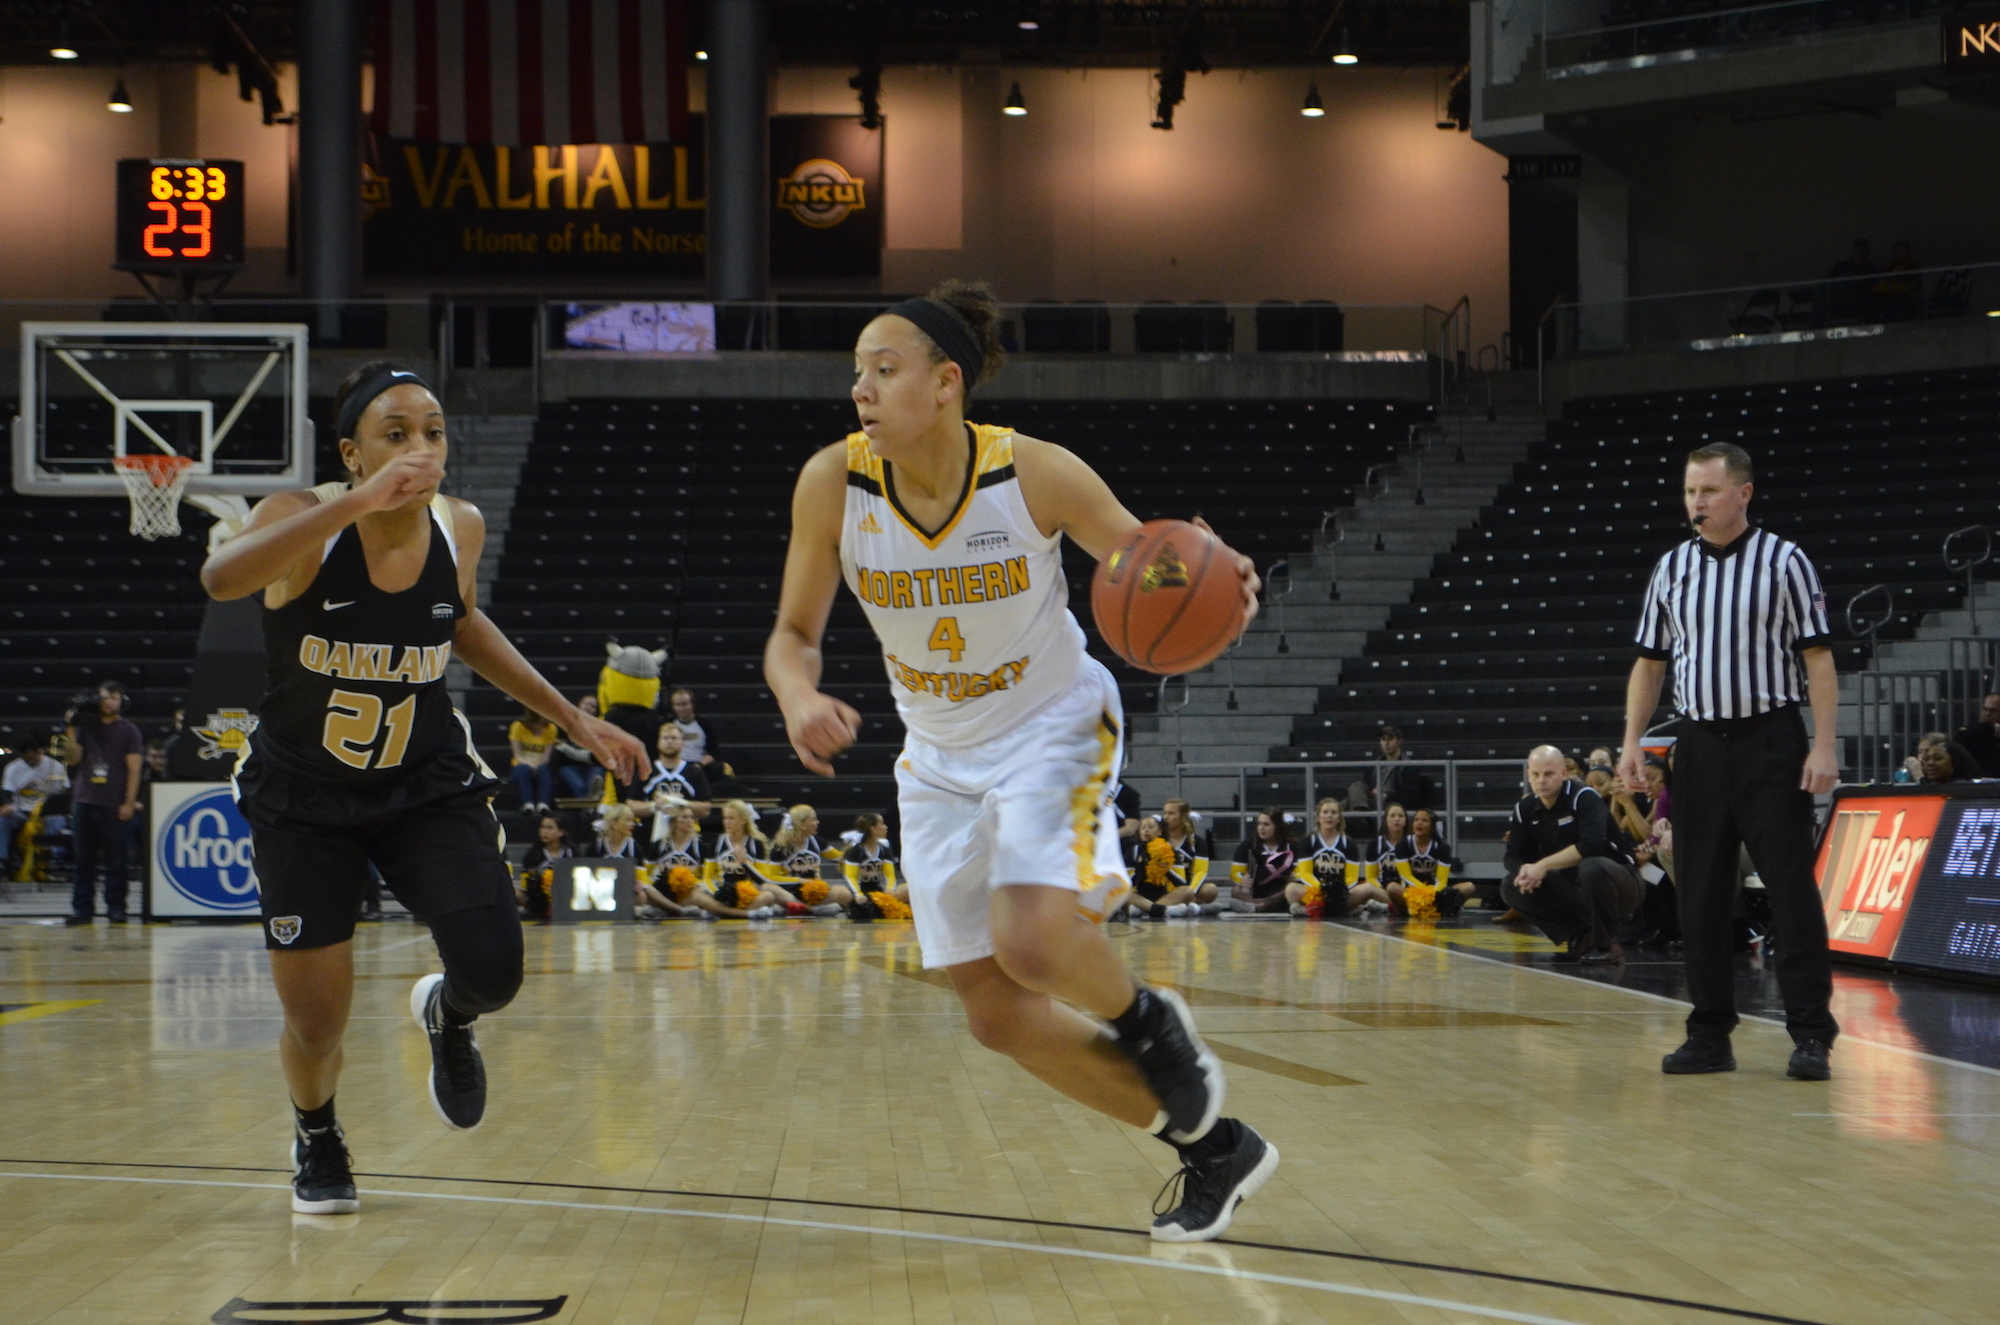 NKU's Mikayla Terry drives to the basket against Oakland on Friday night.